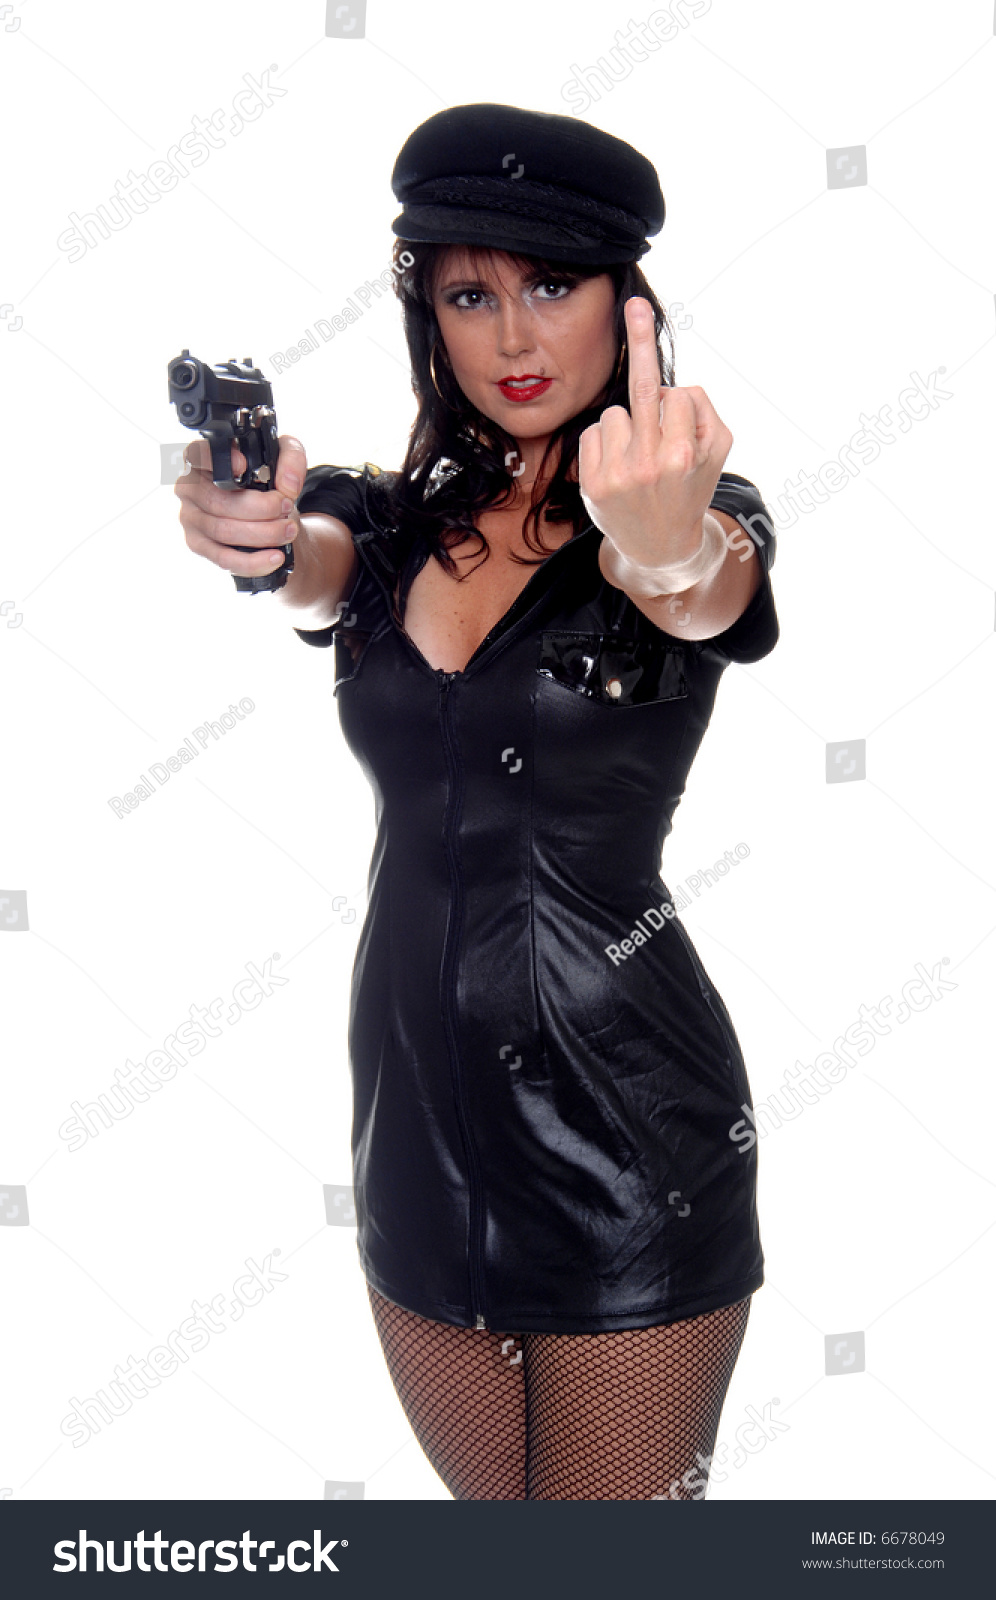 very young police woman pistol stock photo 6678049 shutterstock